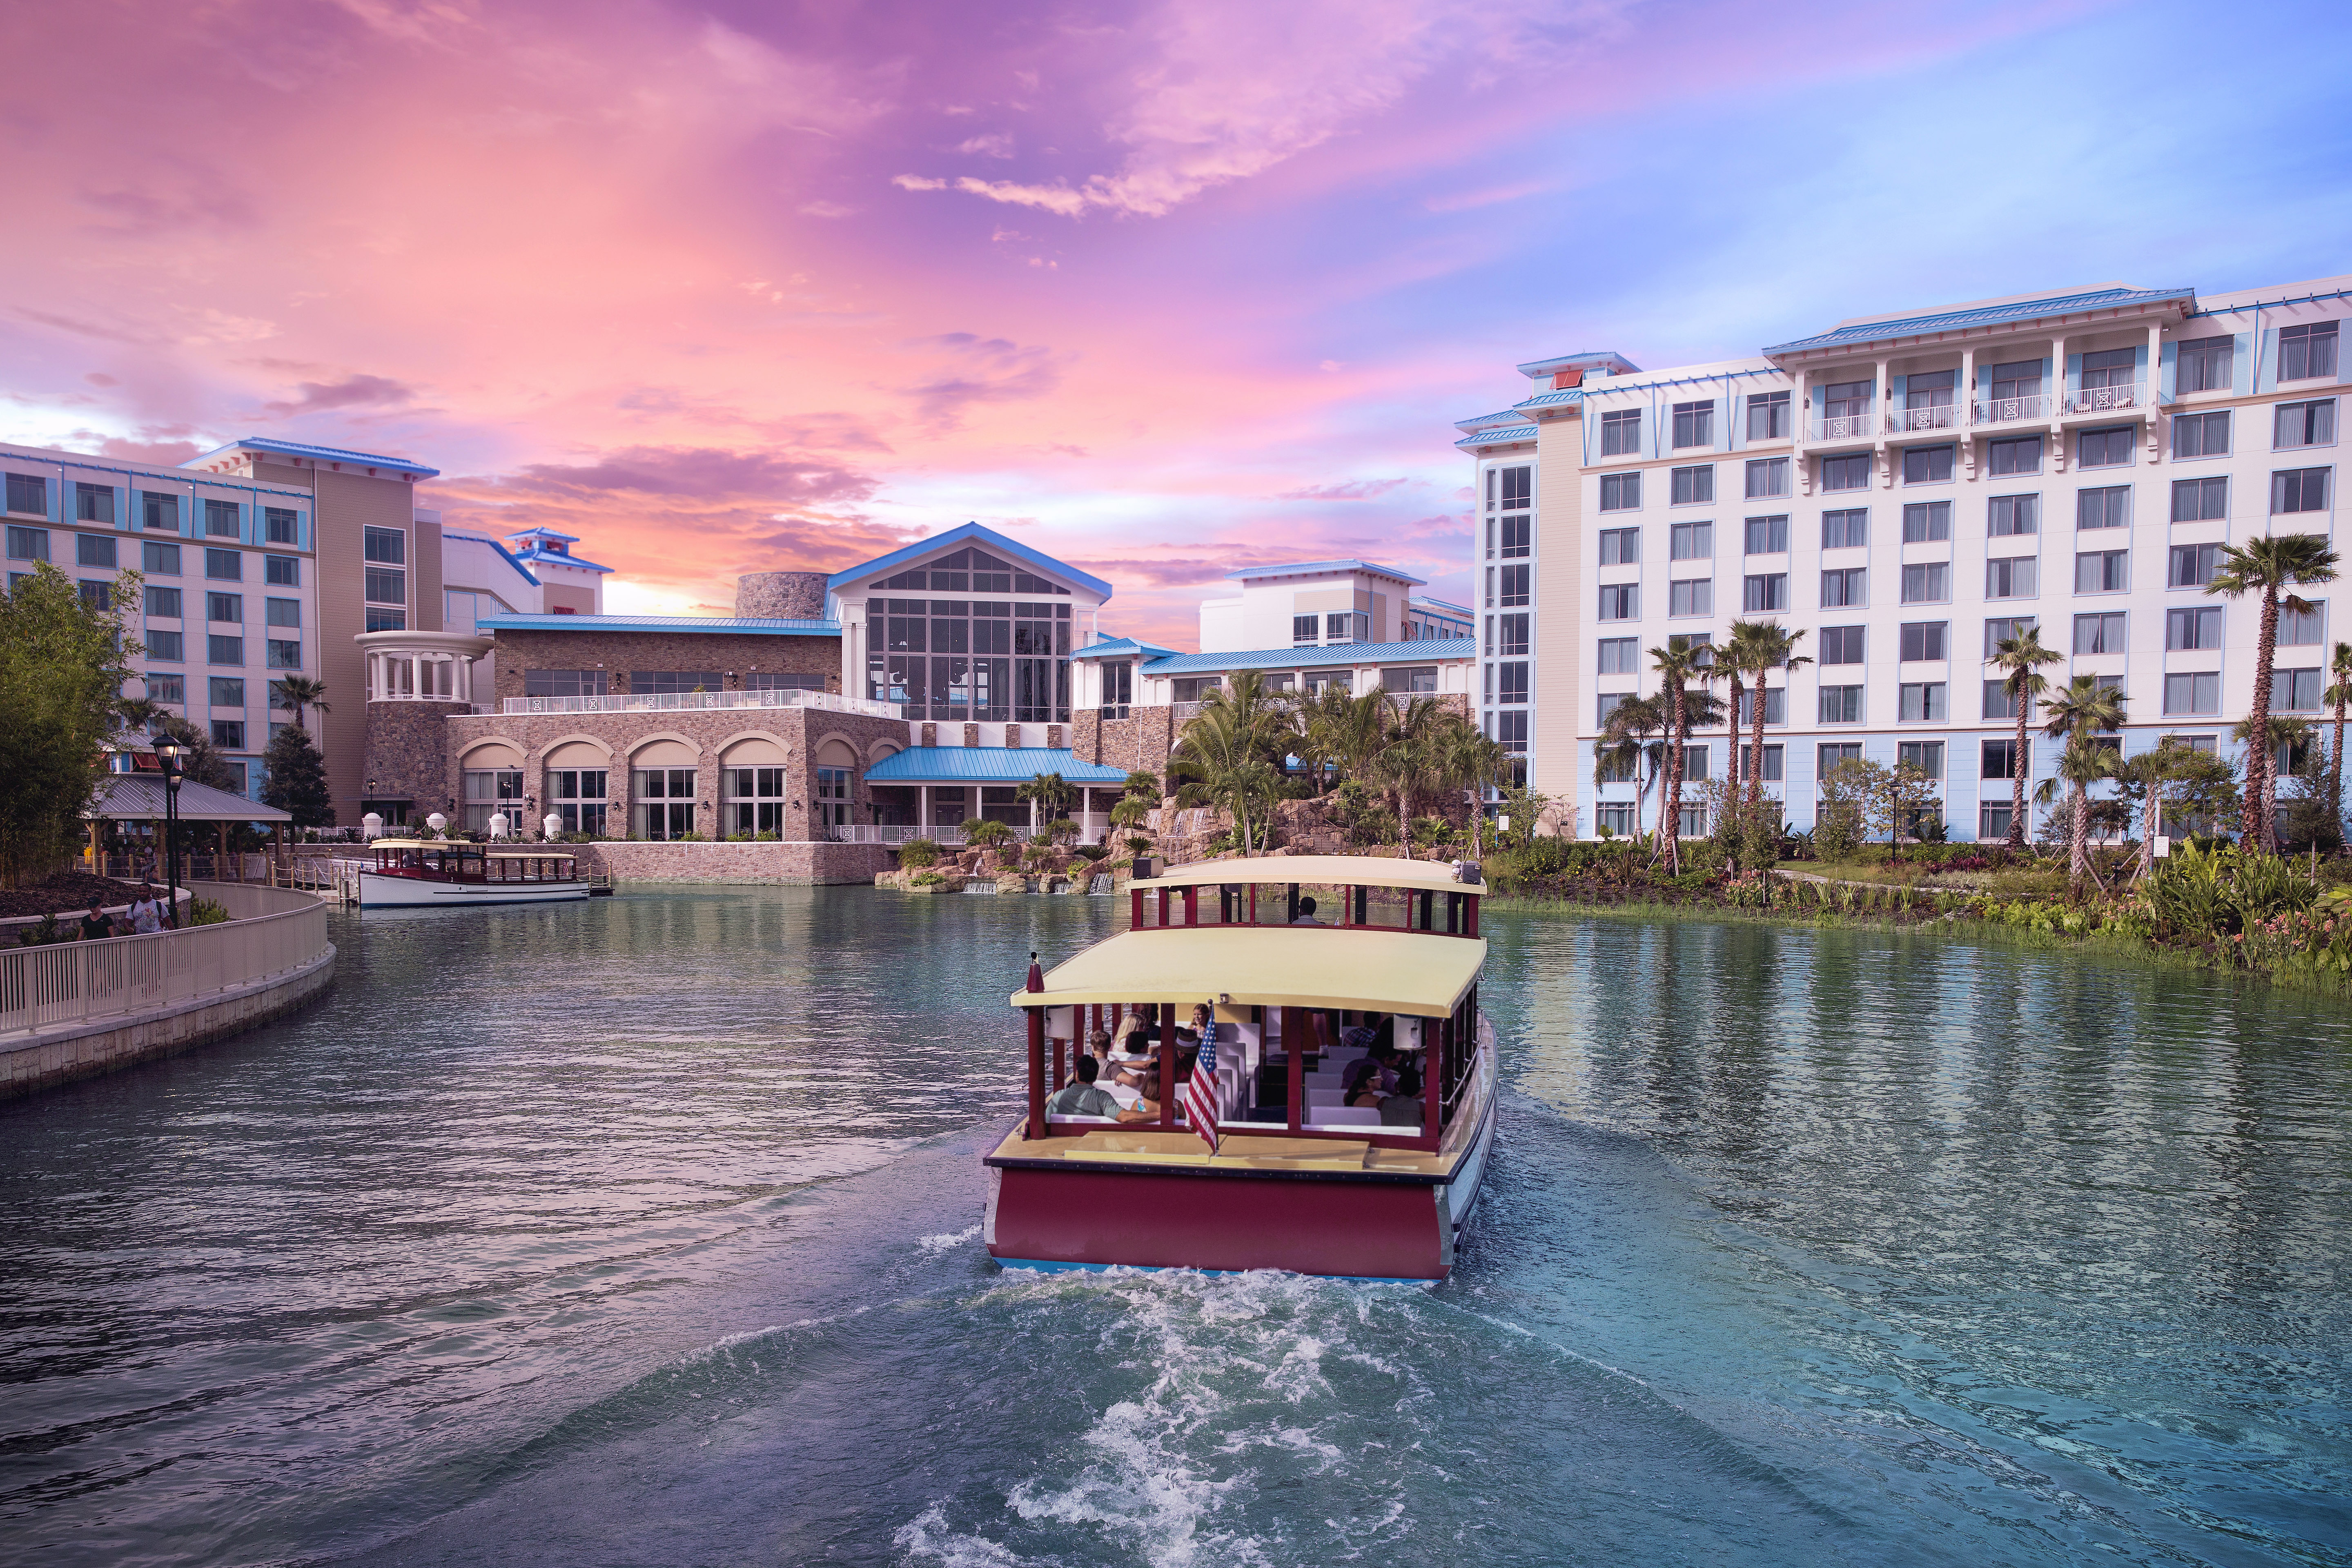 16-17095, Loews Sapphire Falls Resort at Universal Orlando, LSFR, SFR, Resort, RES, Hotels, Accommodations, Preferred, Universal Orlando Resort, UOR